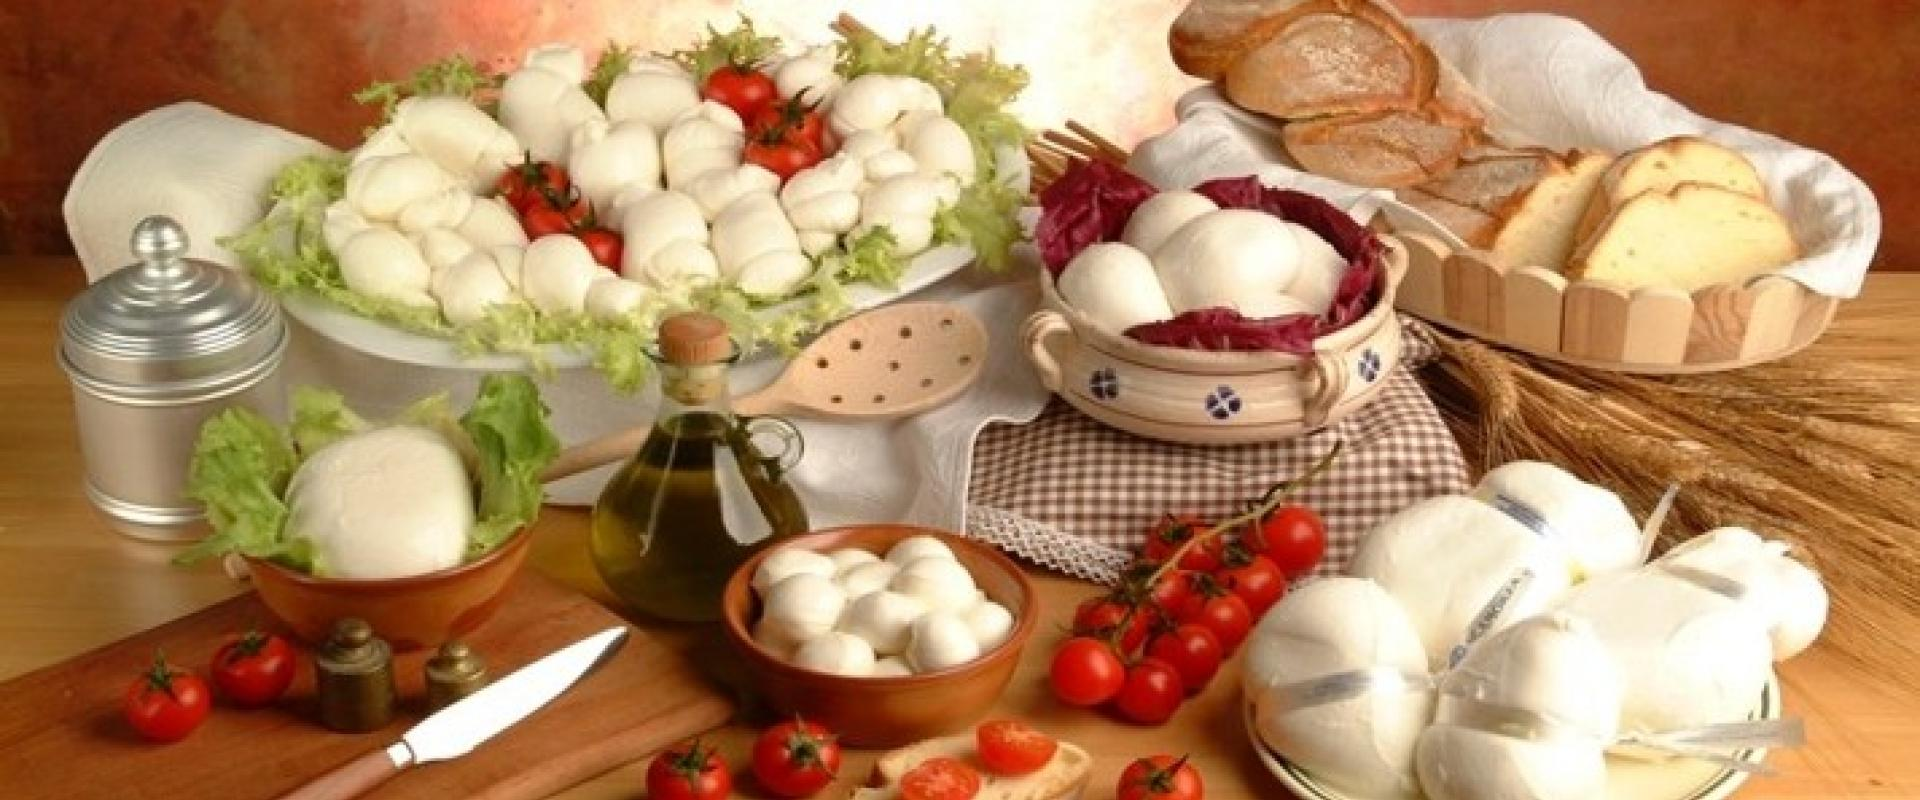 Visit of a famous apulian factory whith cheeses tasting